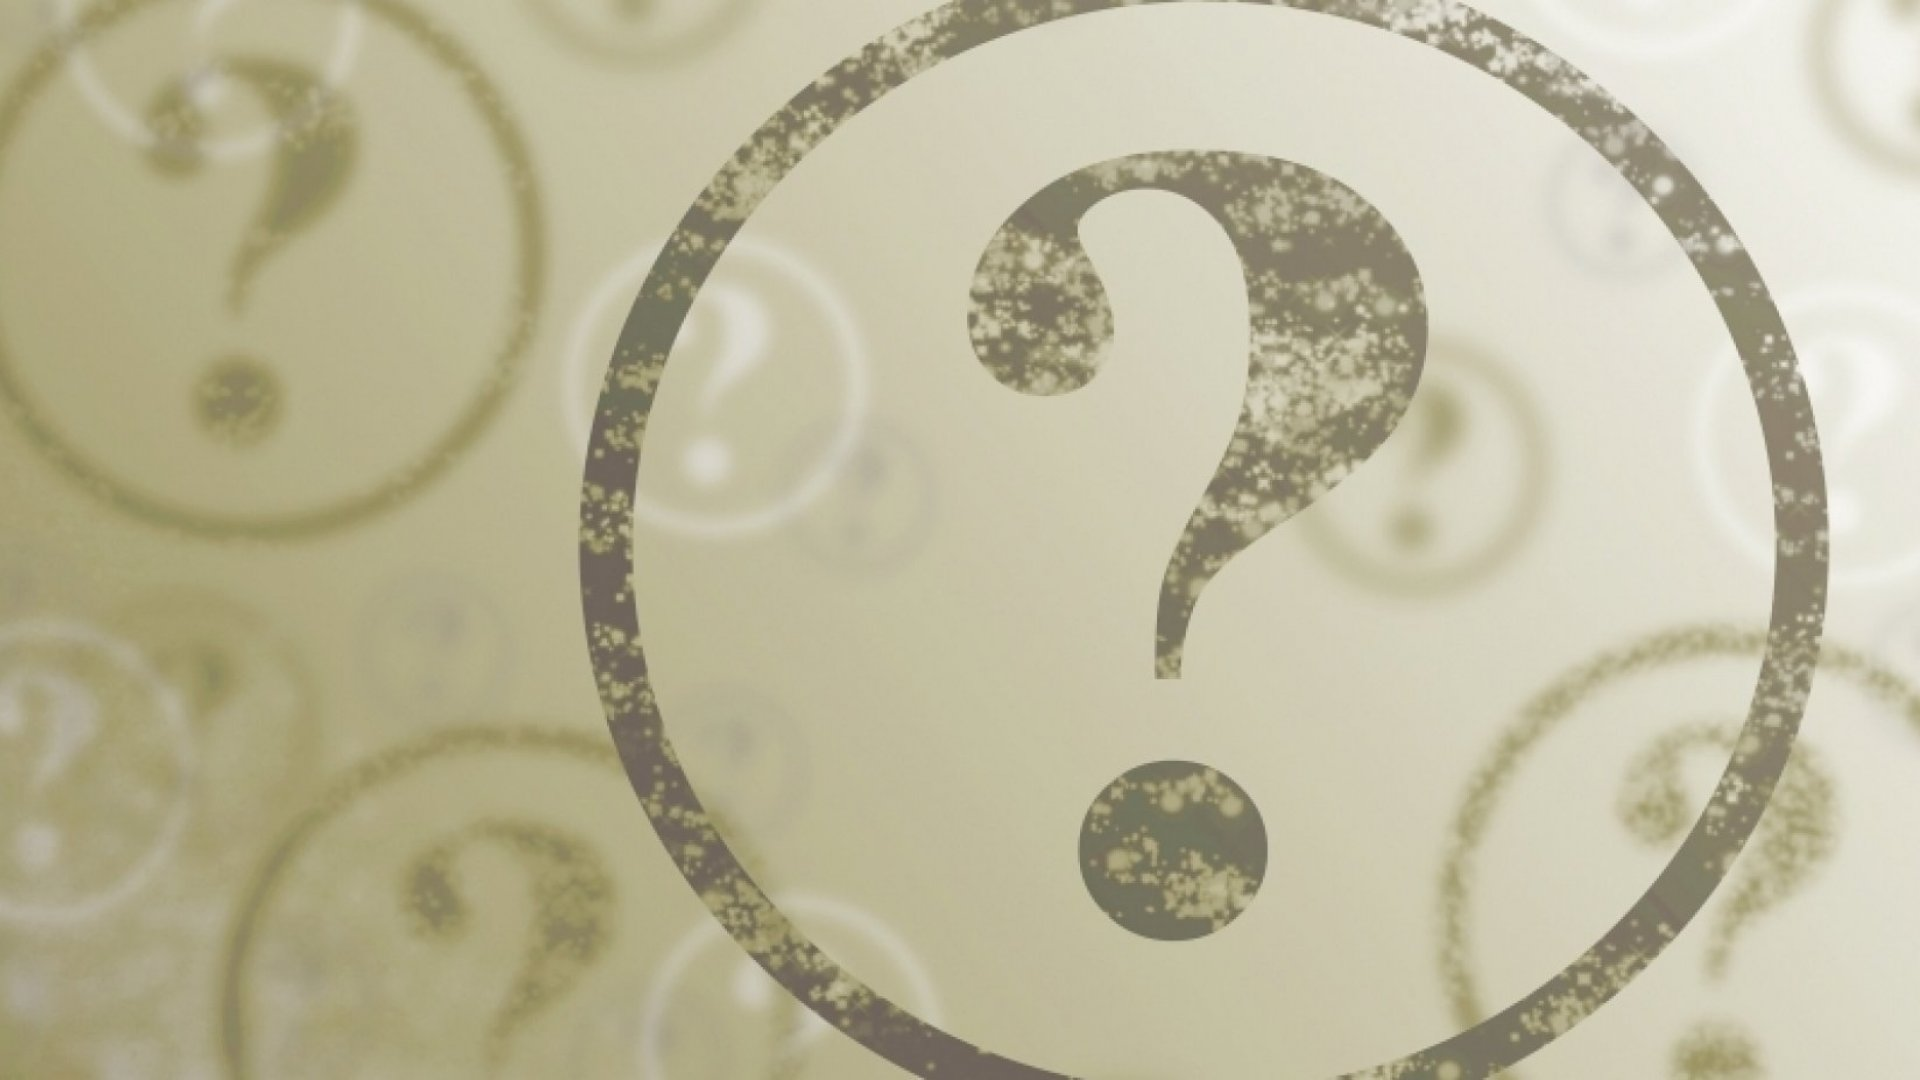 10 Questions to Help Your Team Form Better Solutions